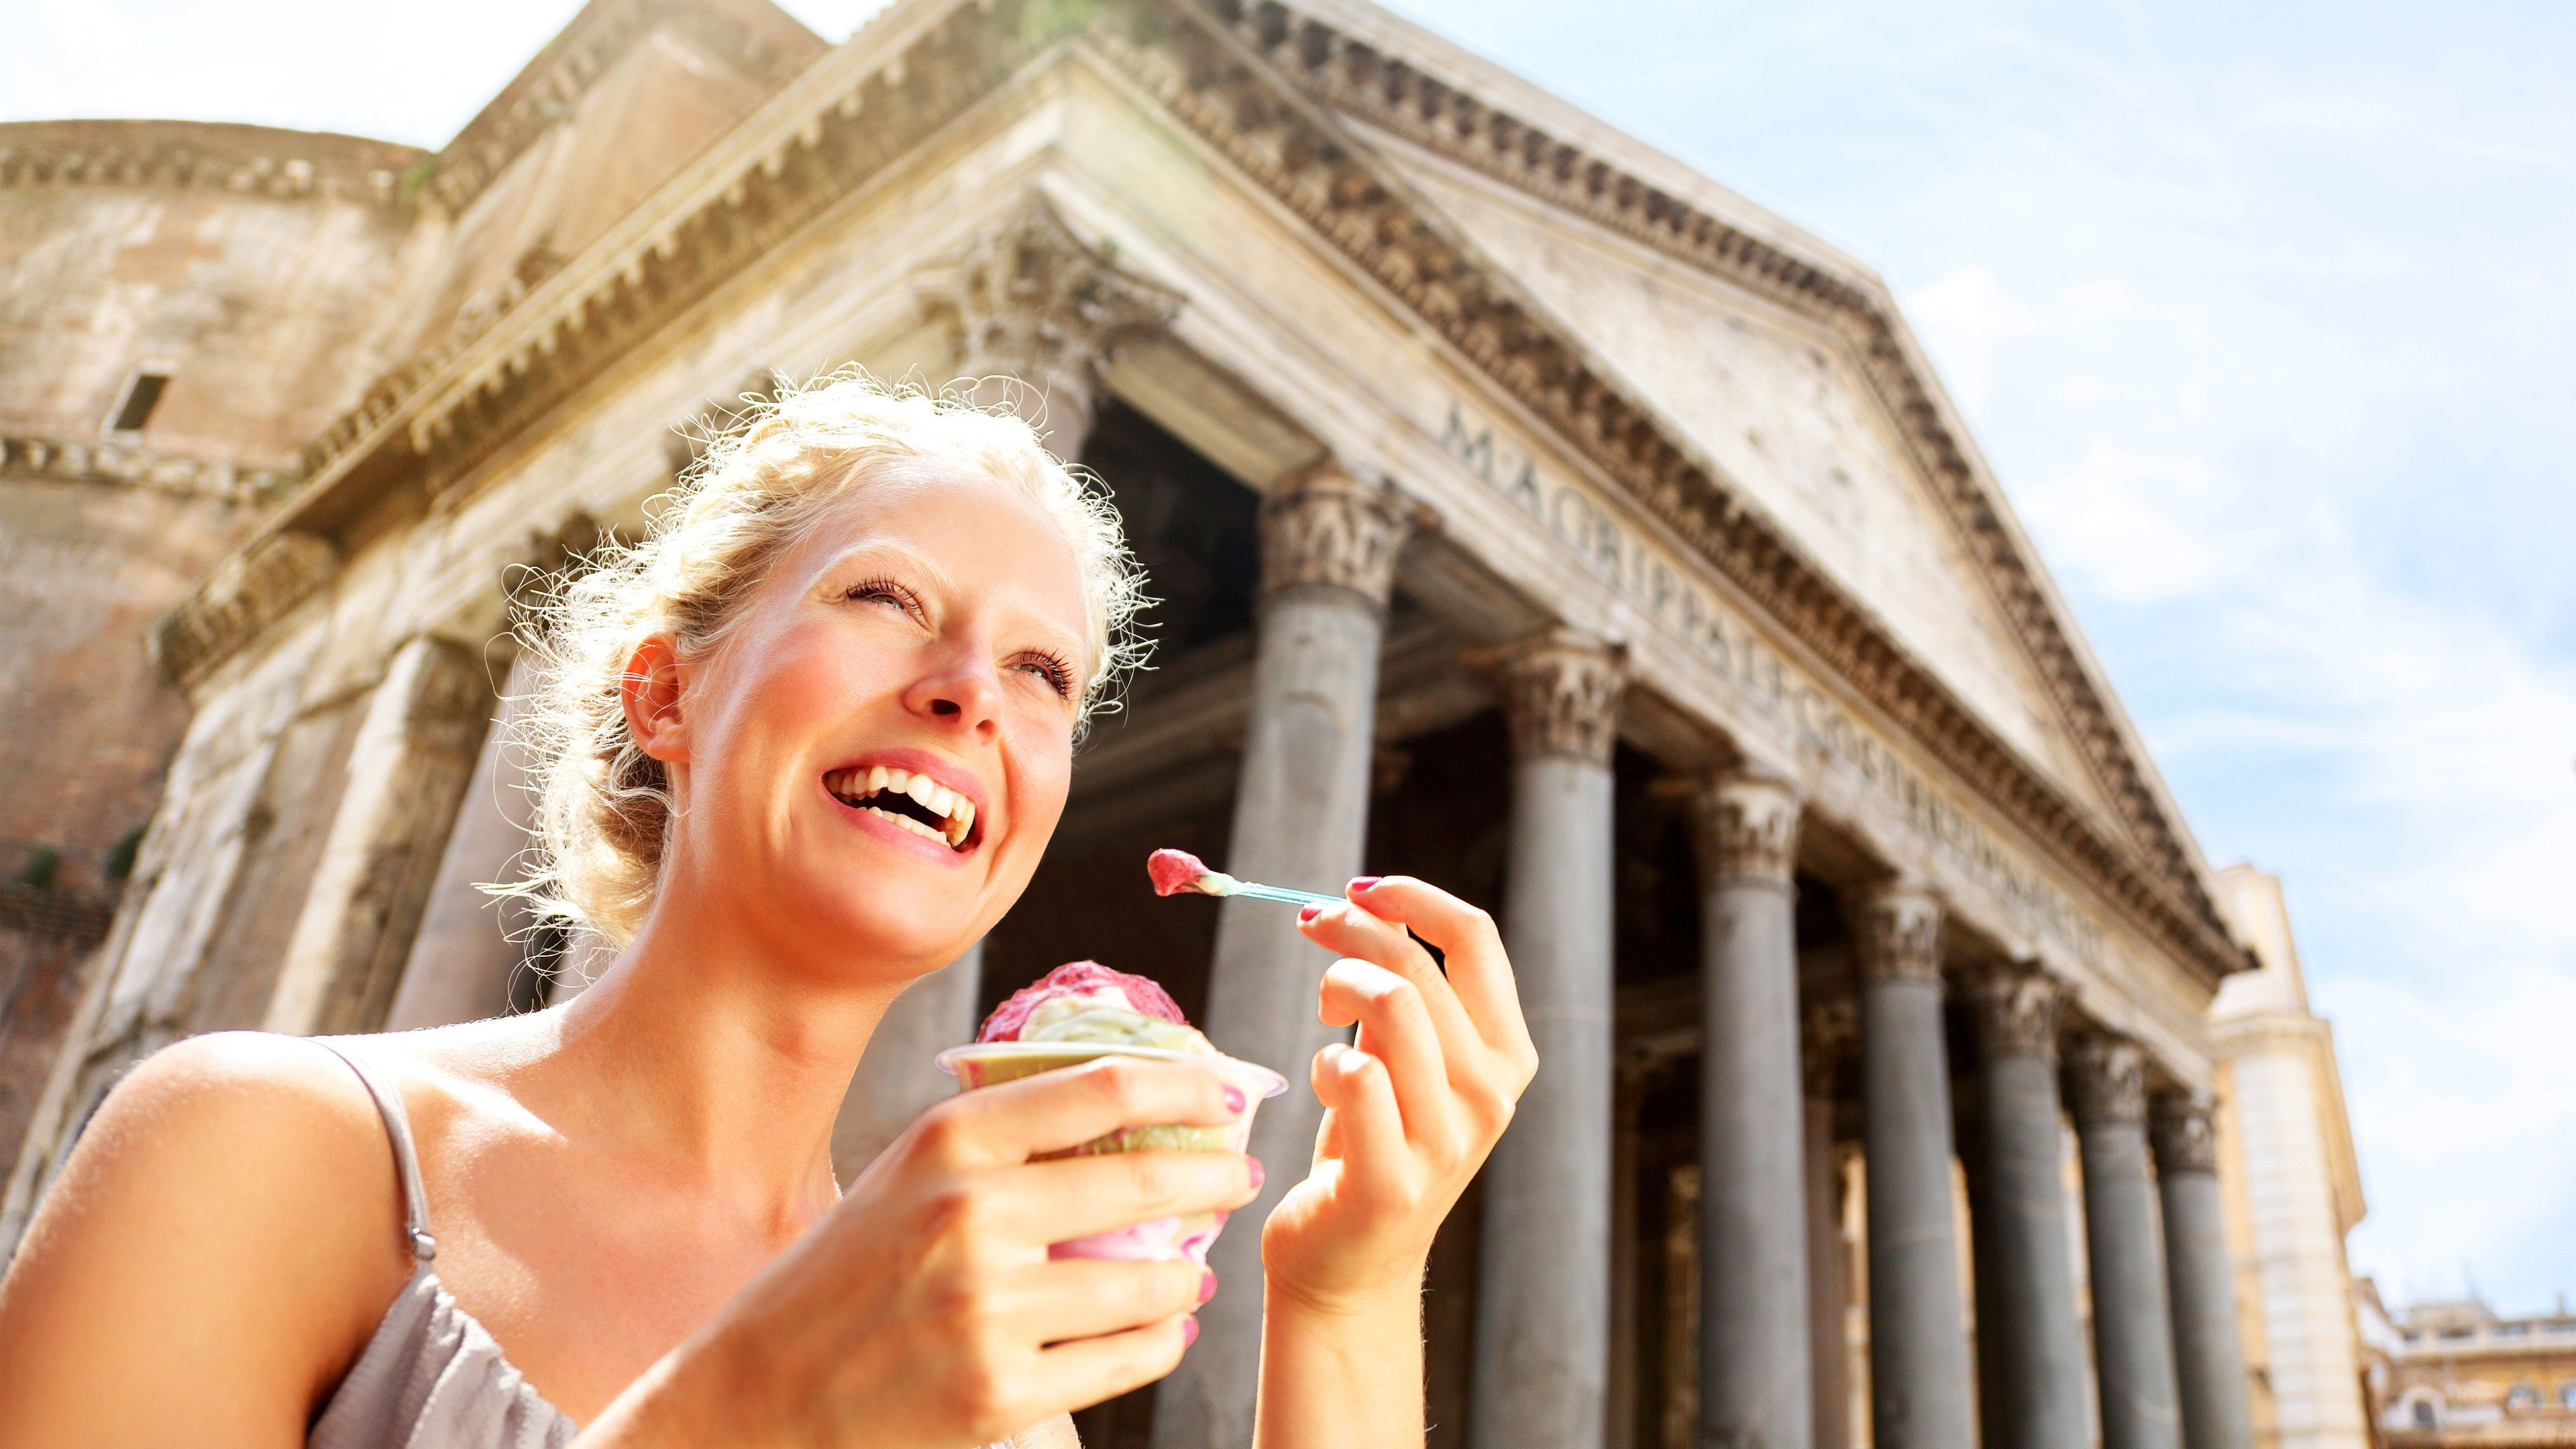 Woman enjoying a cup of gelato in front of the Pantheon in Rome, Italy.